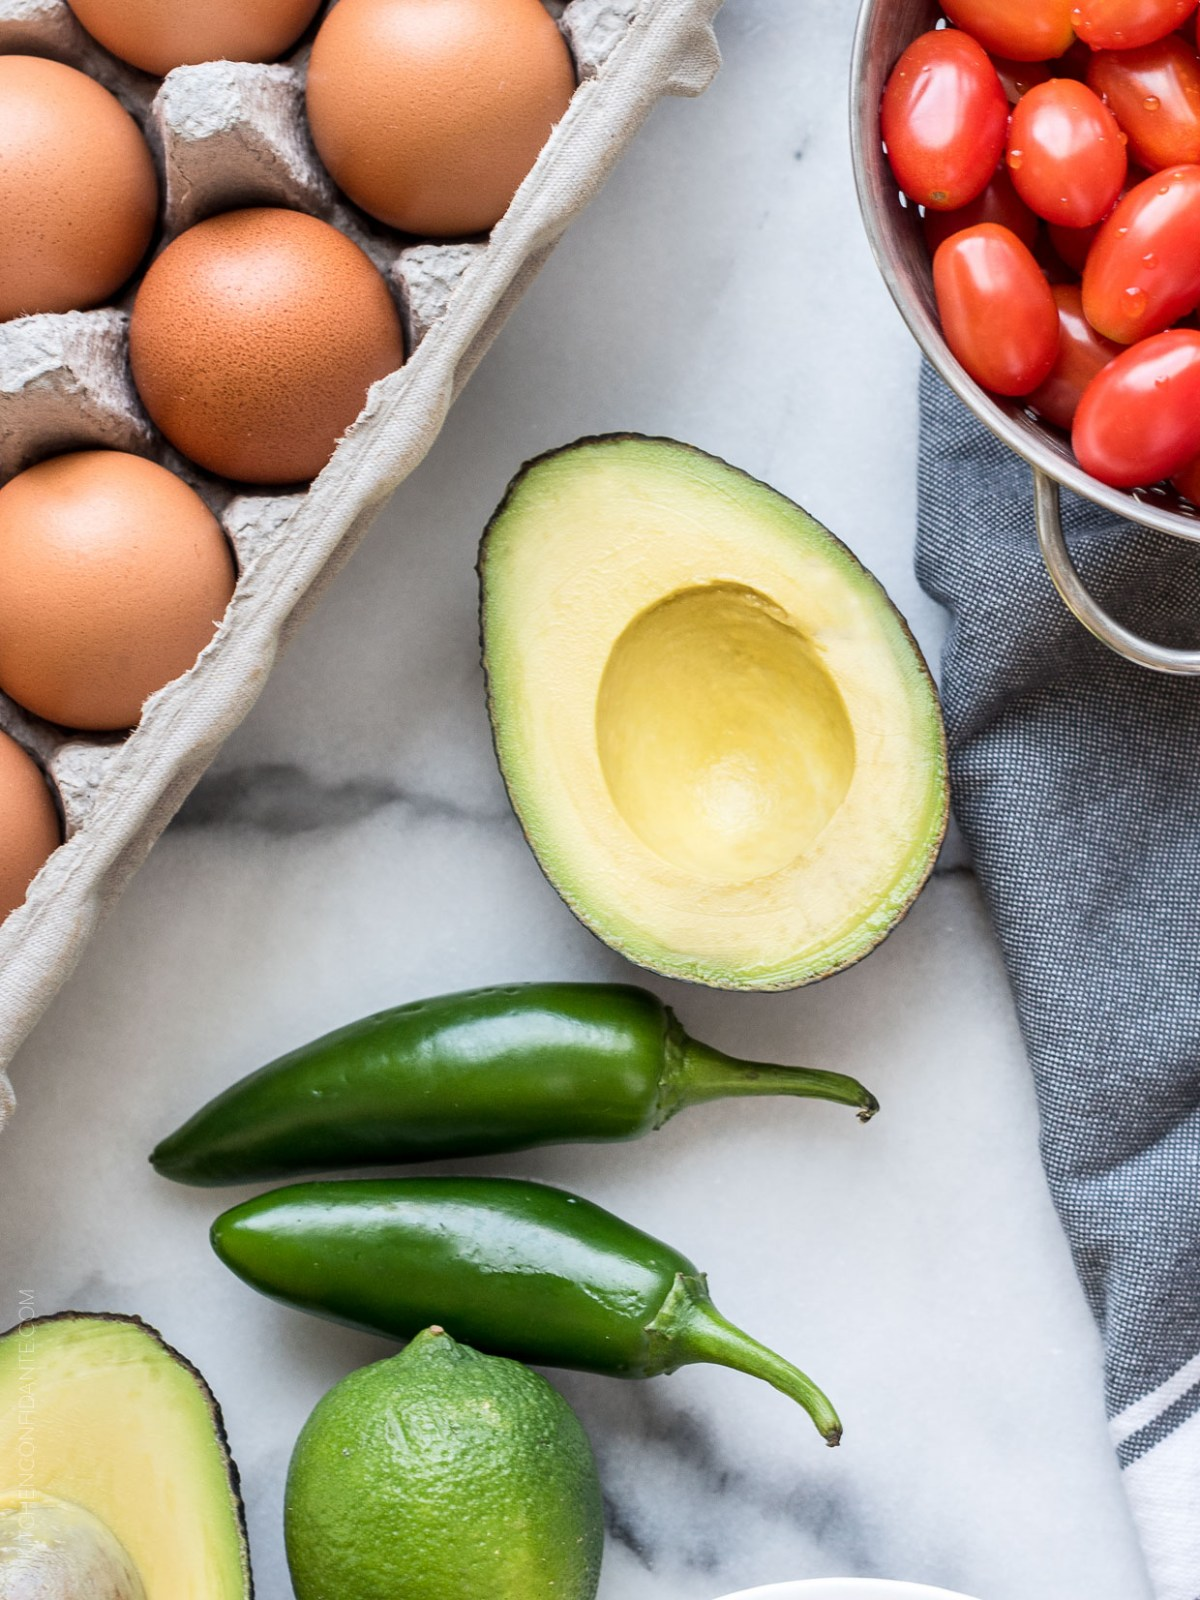 Jalapeno peppers, avocado, cherry tomatoes, and a carton of eggs.